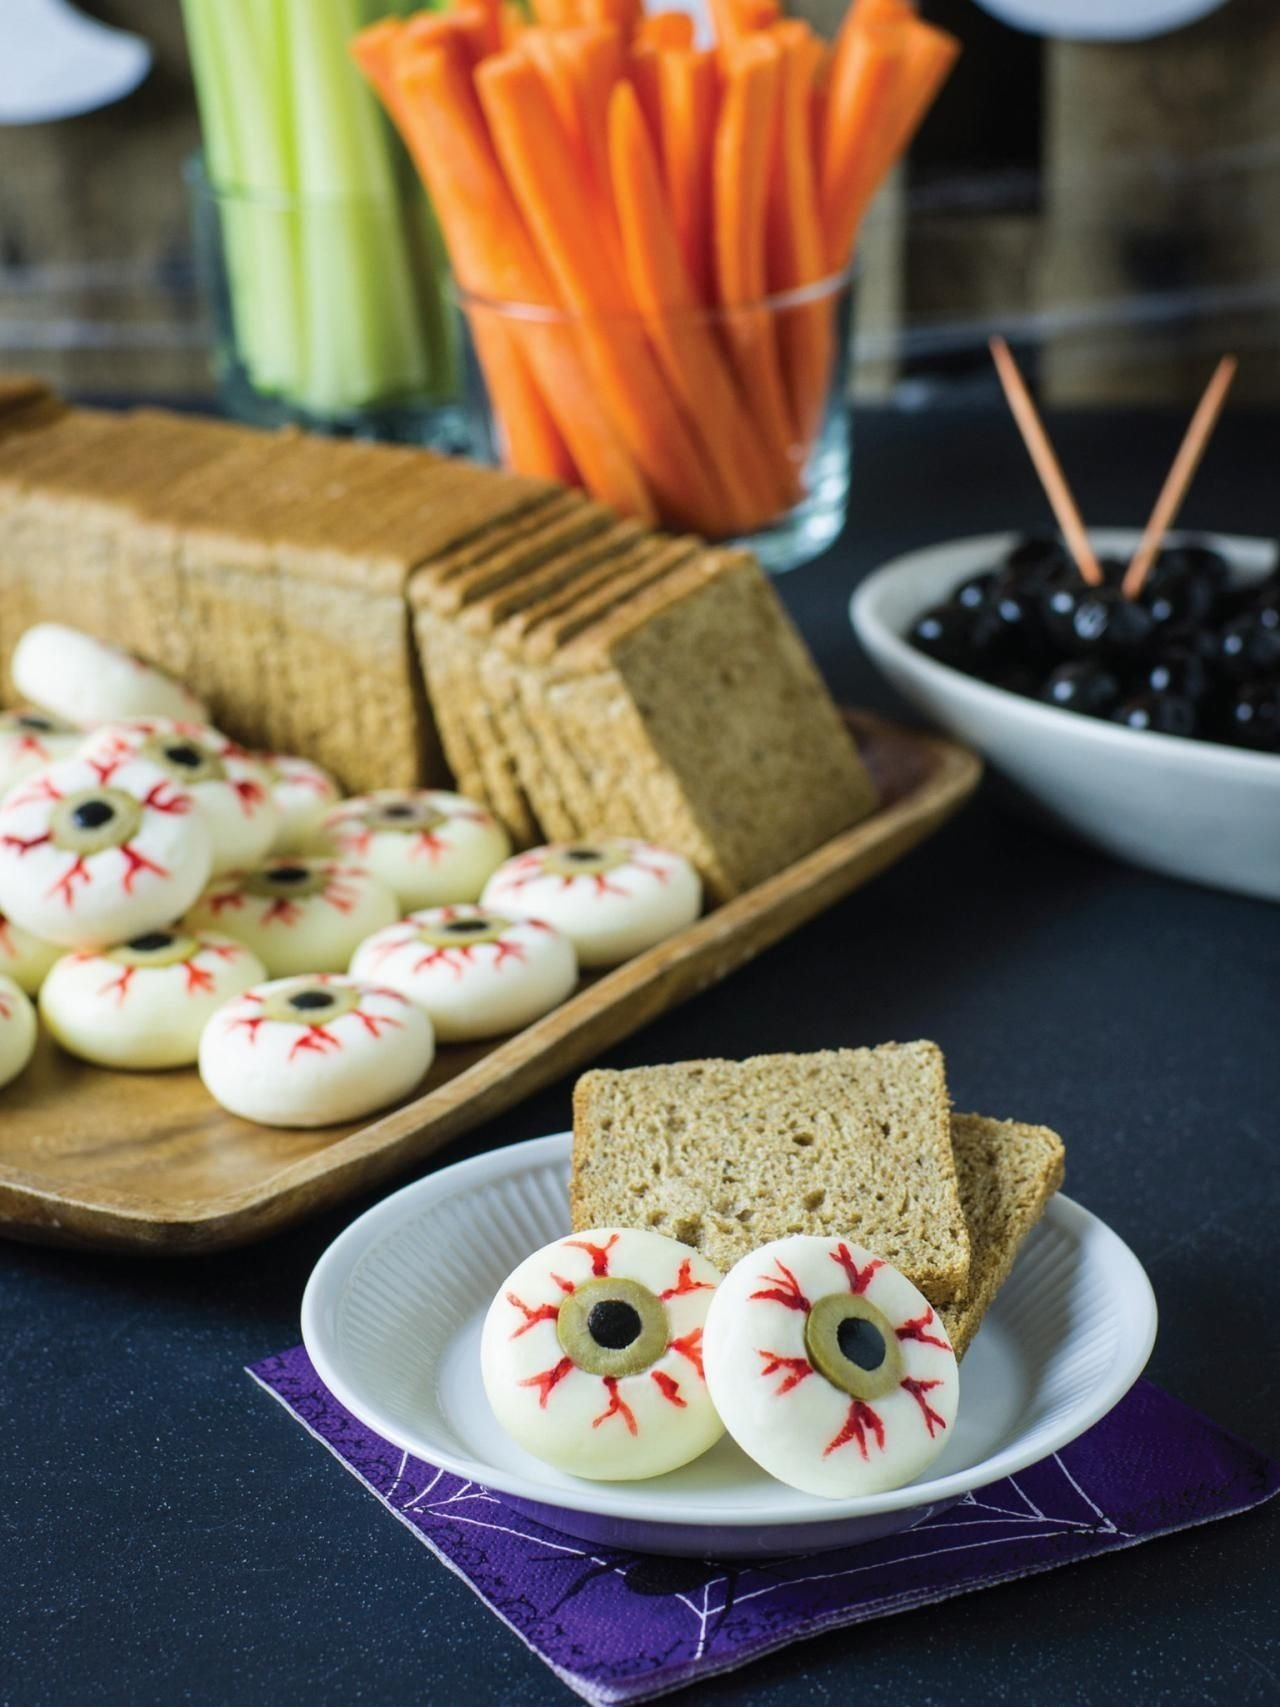 10 Stylish Halloween Food Ideas For Kids Party 50 sweet and salty halloween snacks and treats party guests 5 2020